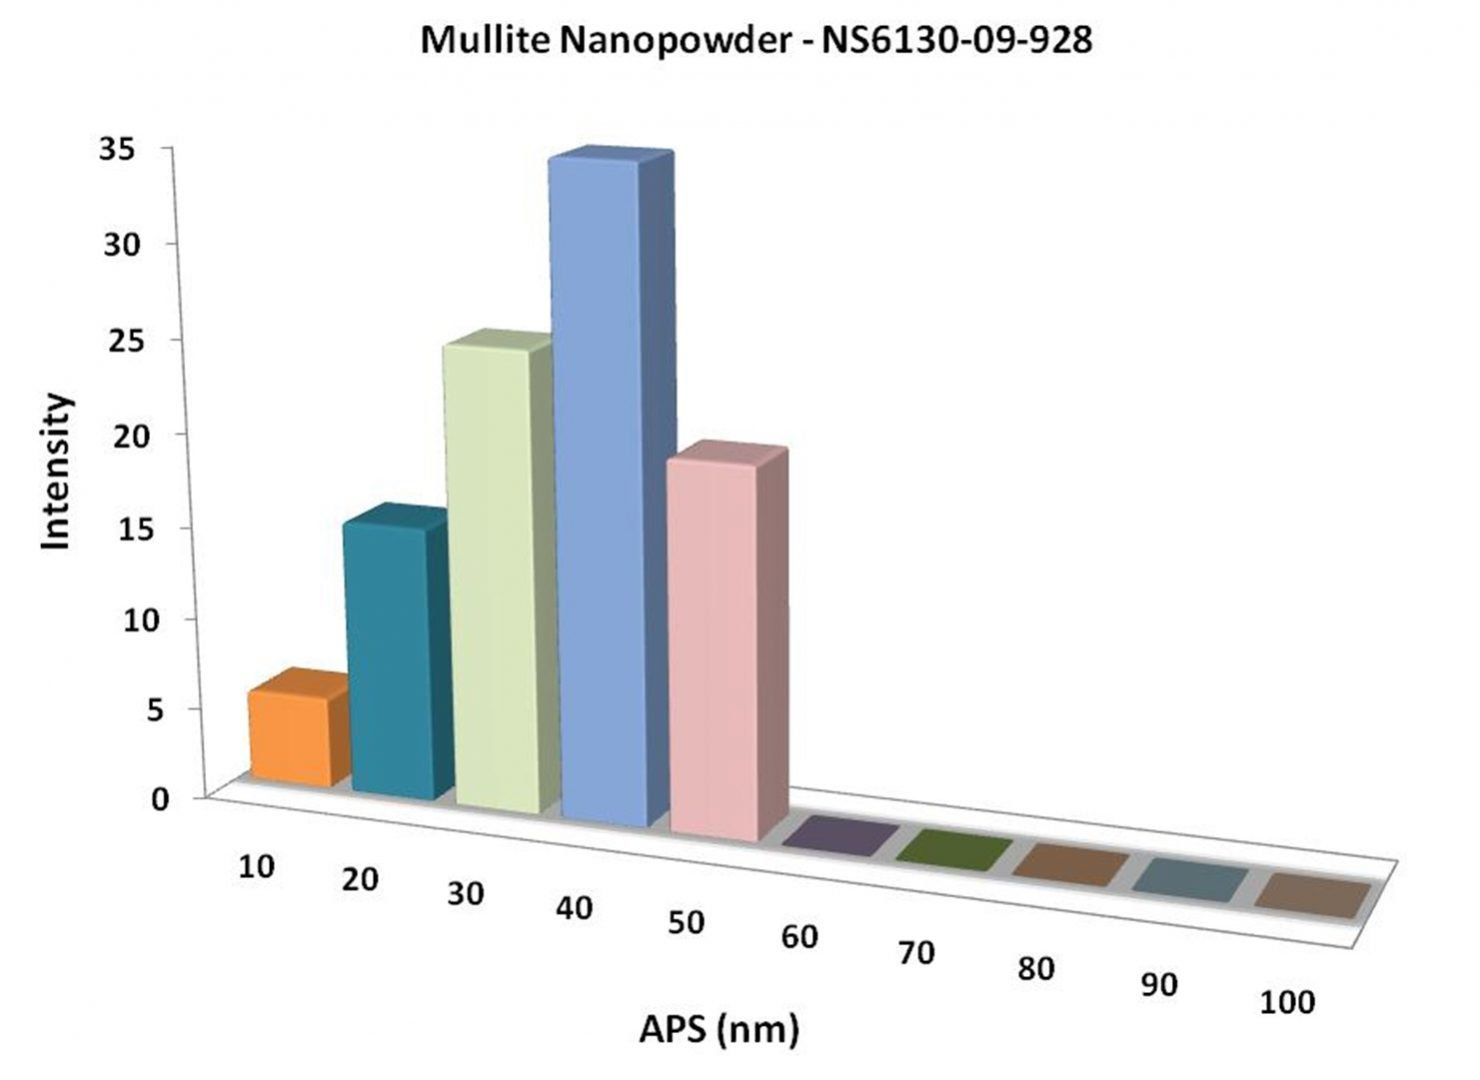 Particles Size Analysis - Mullite Nanoparticles